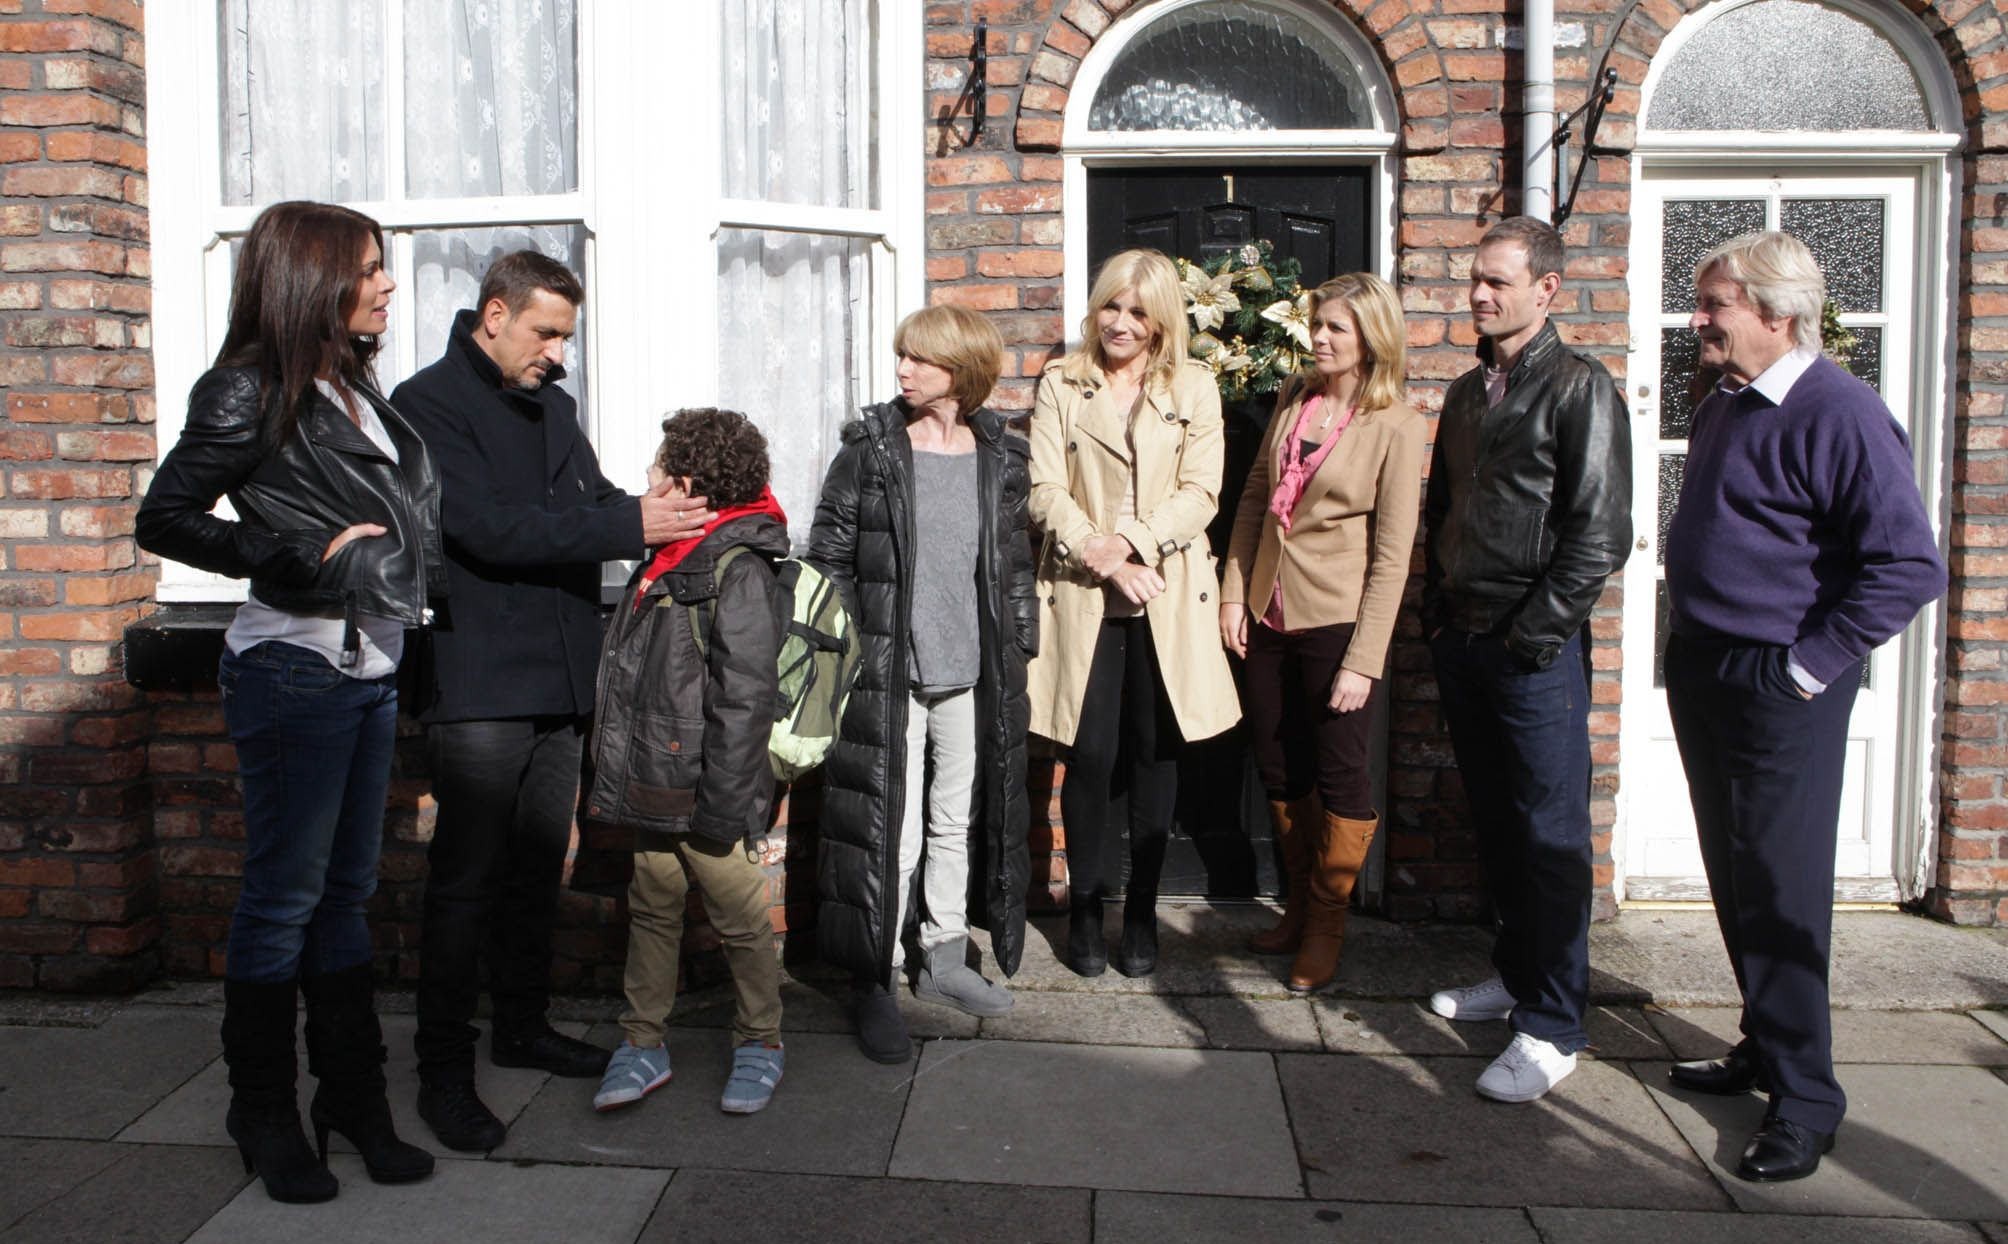 Peter and Carla return to Weatherfield